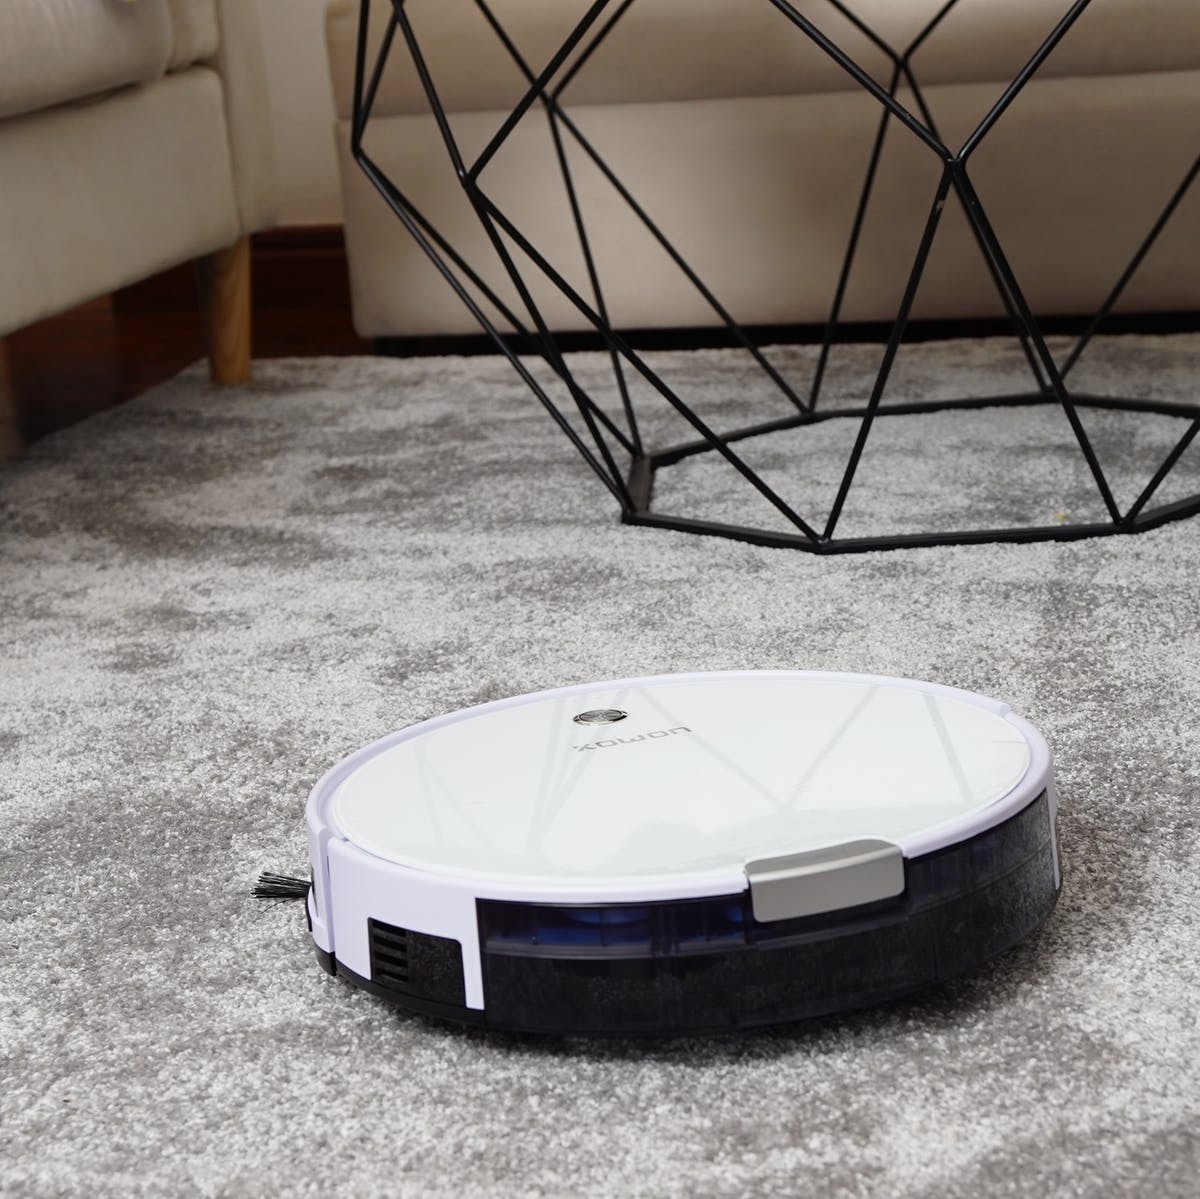 Now's Your Chance to Finally Get a Robot Vacuum for a Fraction of the Price